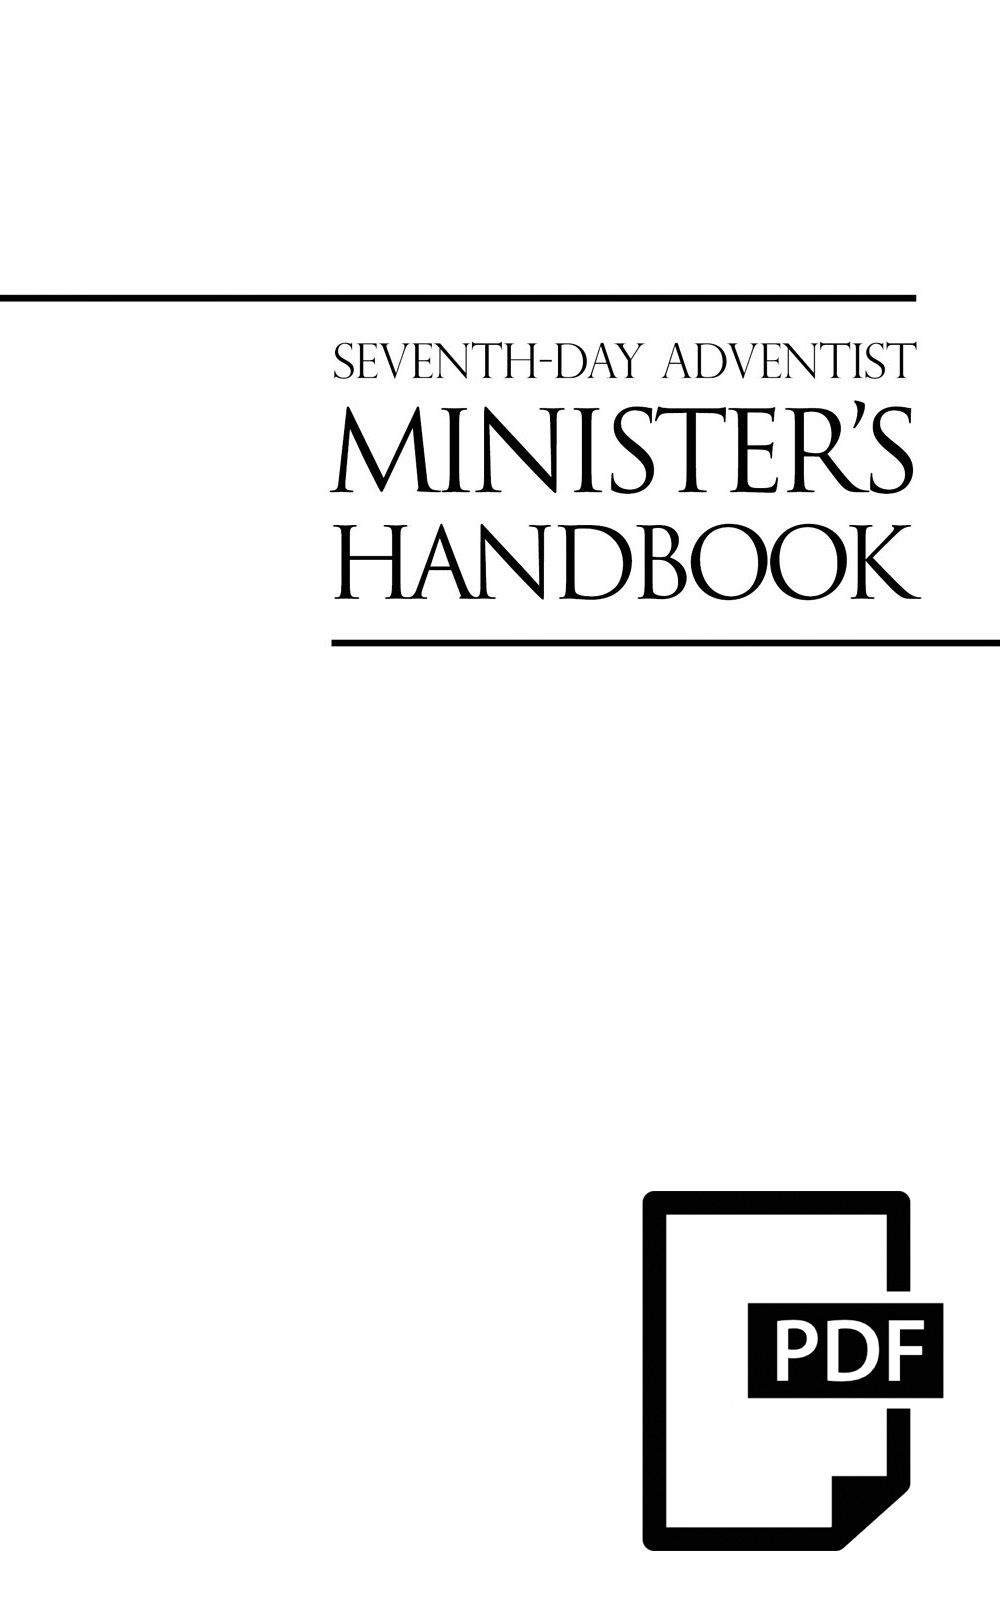 Minister's Handbook (PDF Download) cover image